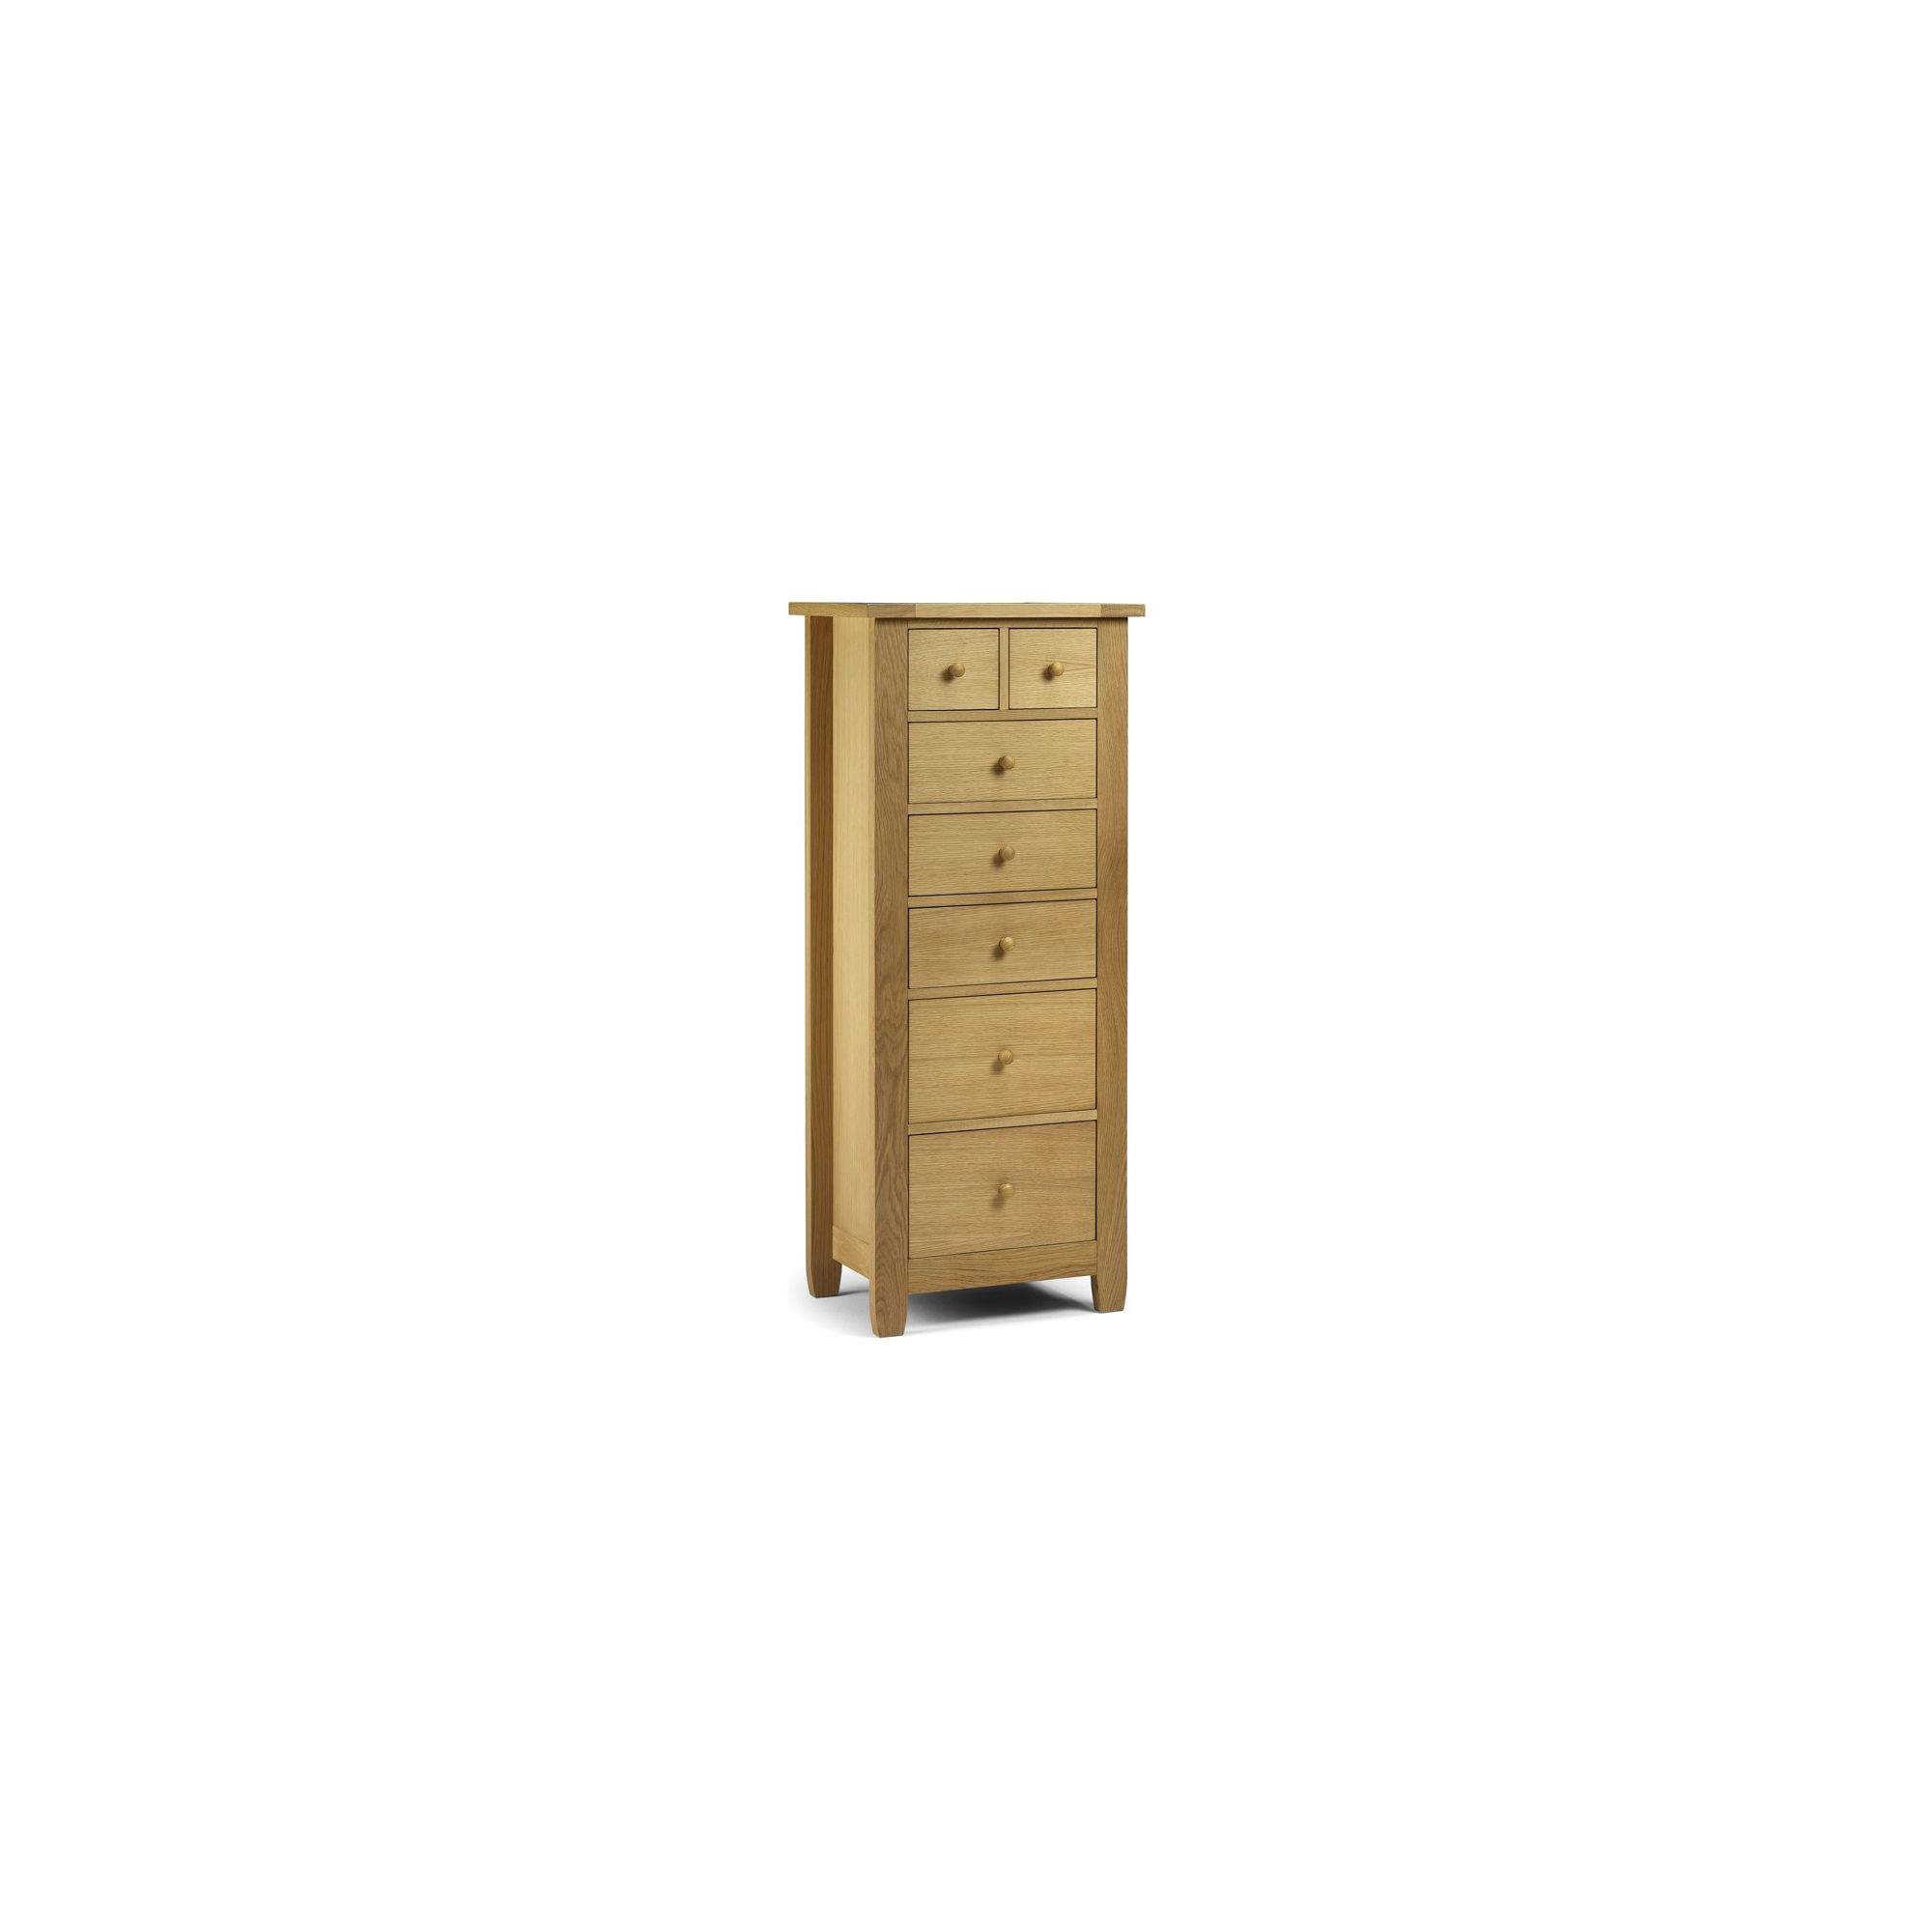 Julian Bowen Lyndhurst 7 Drawer Tallboy Chest at Tesco Direct